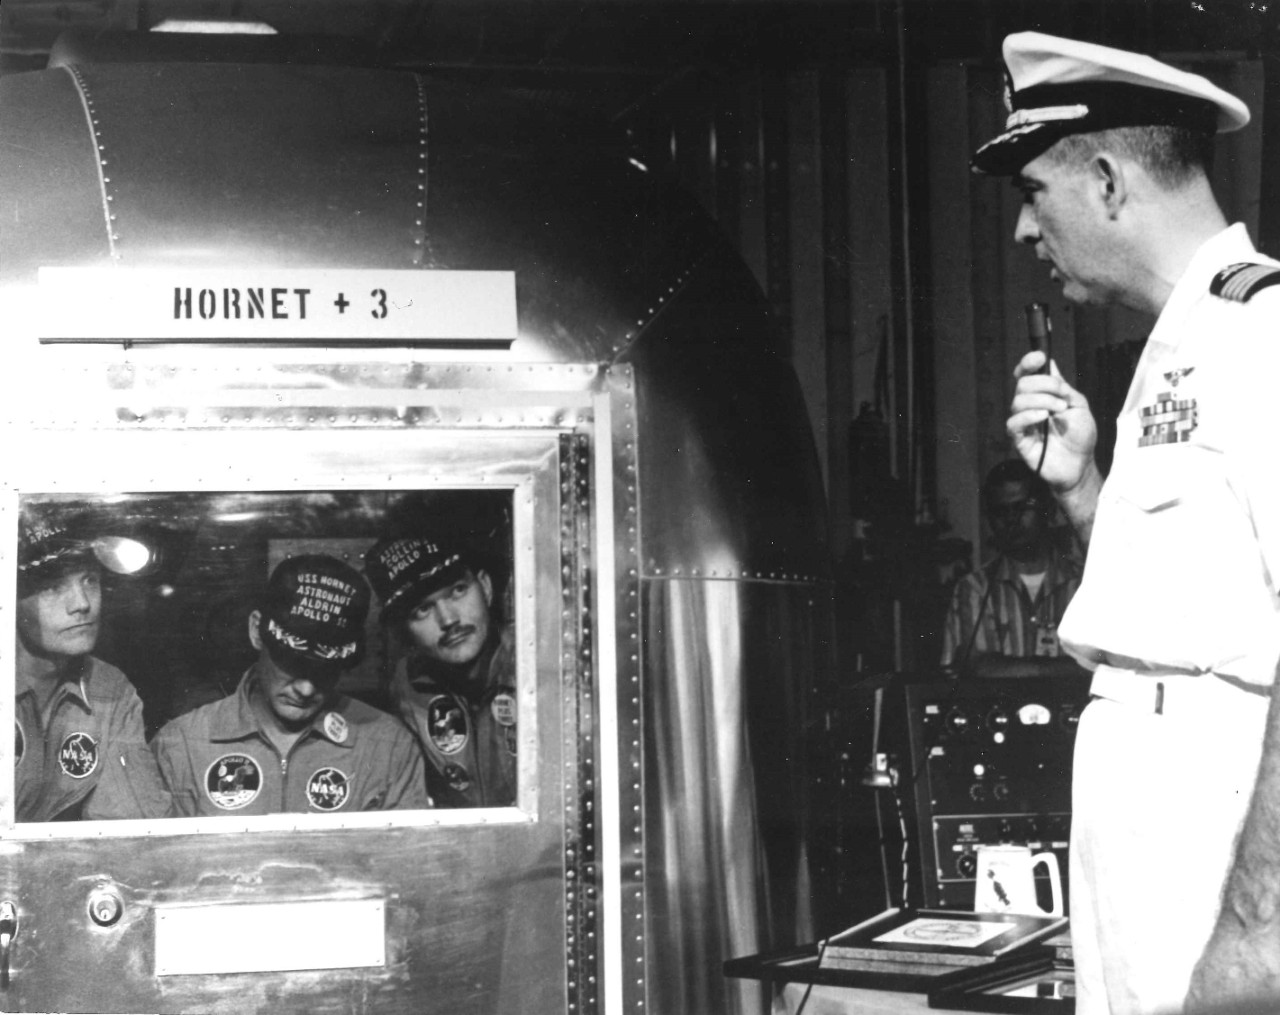 <p>Captain Carl Seiberlich speaks with the Apollo 11 astronauts, who are inside the Mobile Quaratine Facility.</p>